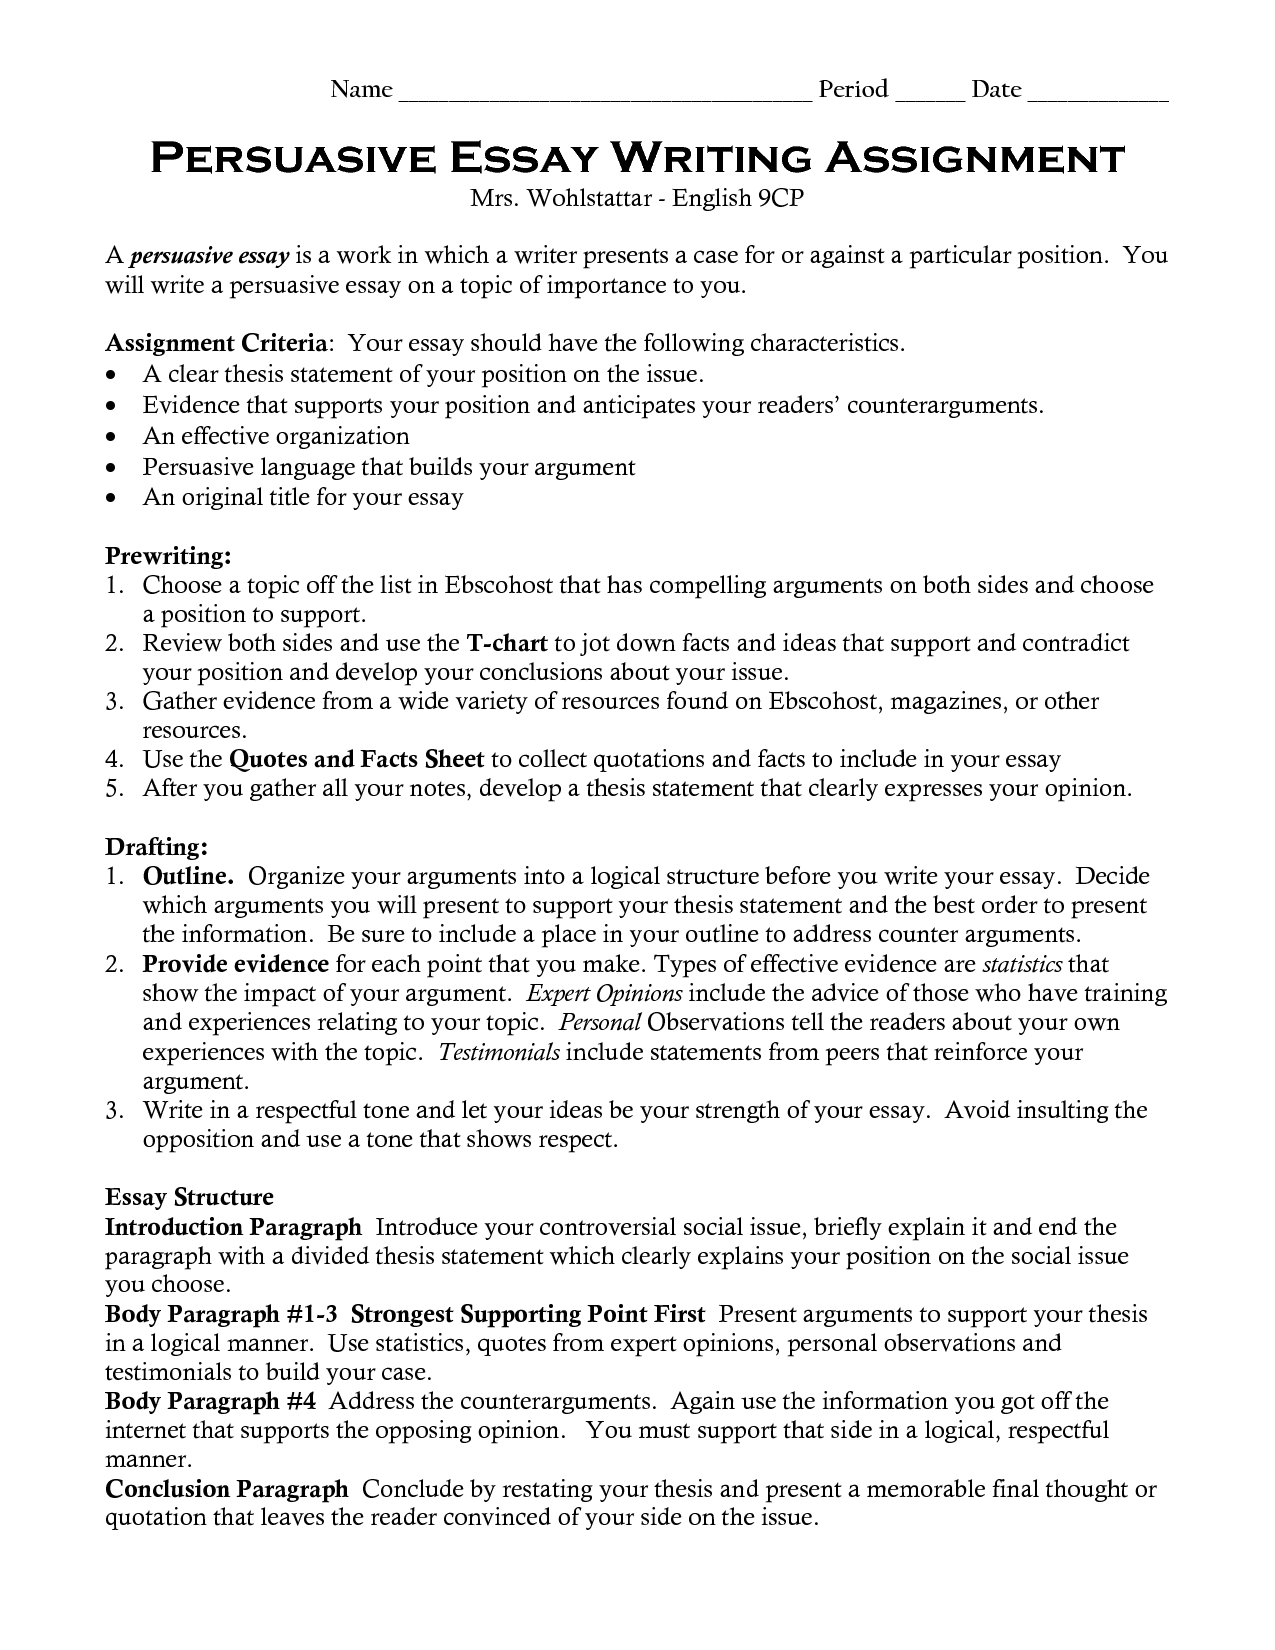 010 Essay Example Writer Outstanding Com My Writer.com Pro Writing Reviews Comparative Full